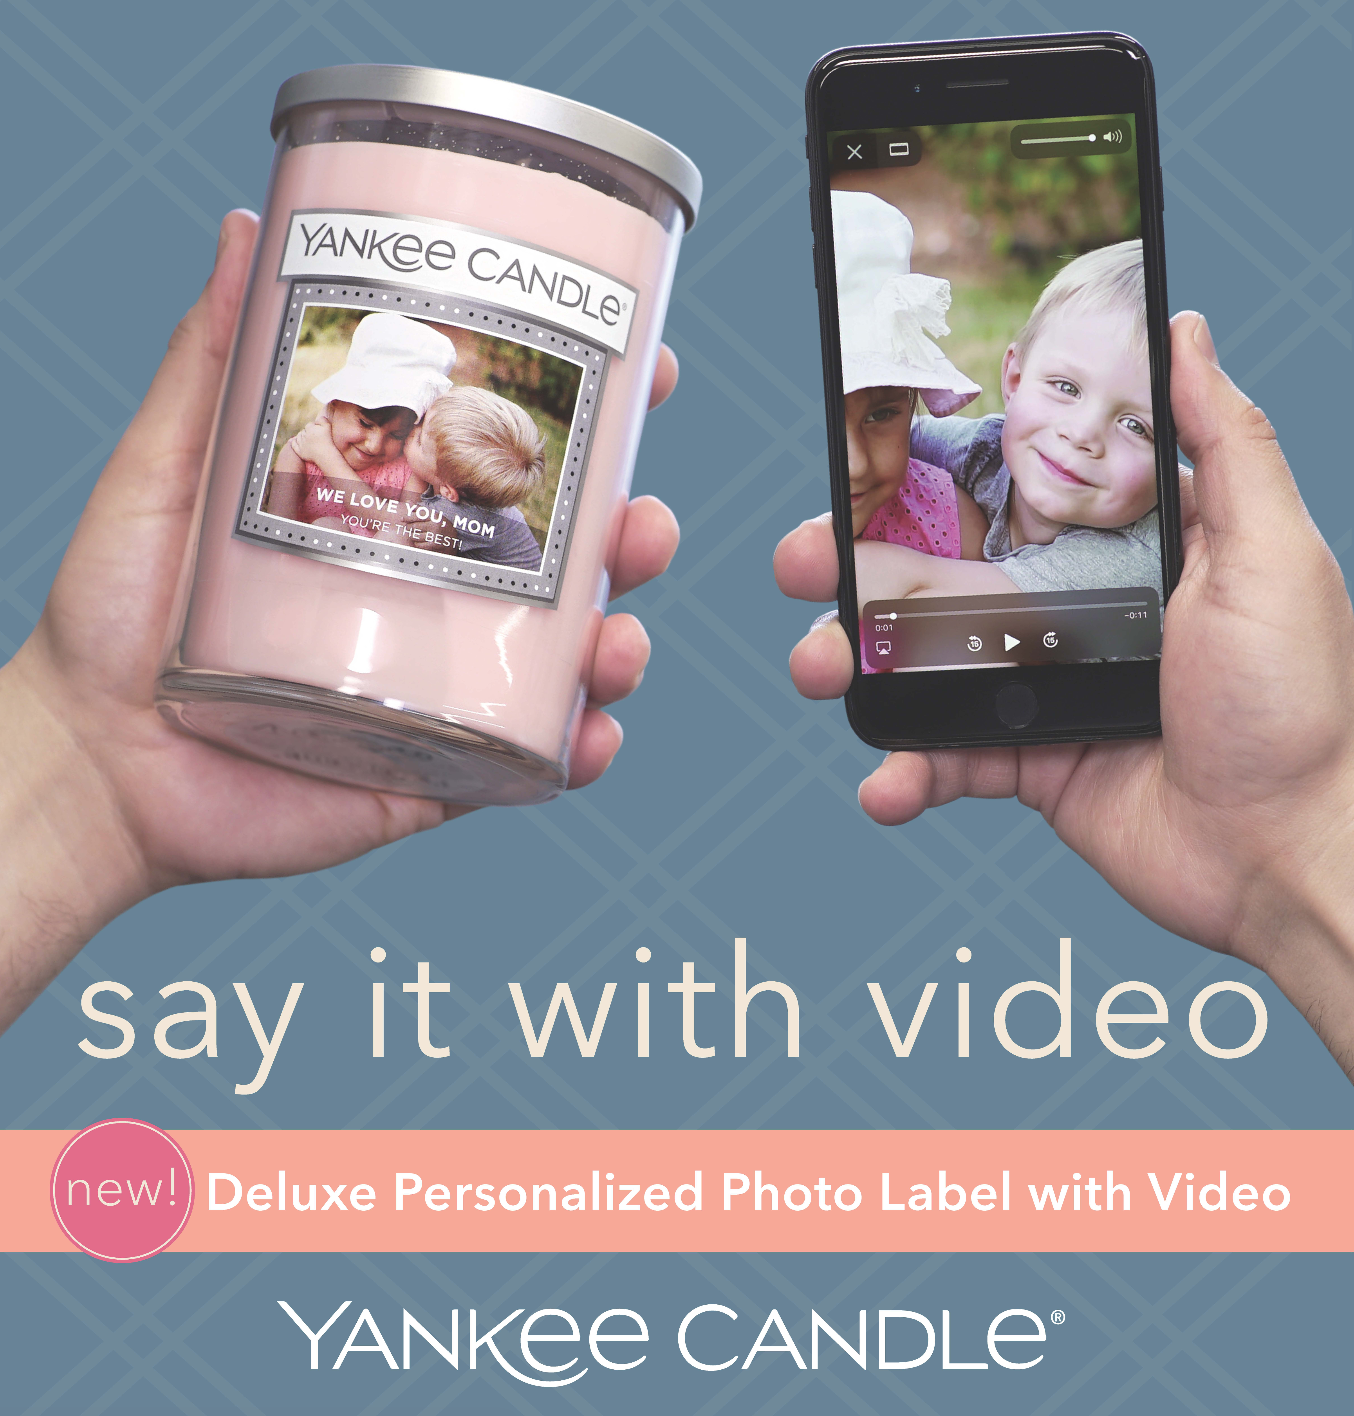 yankee candle event